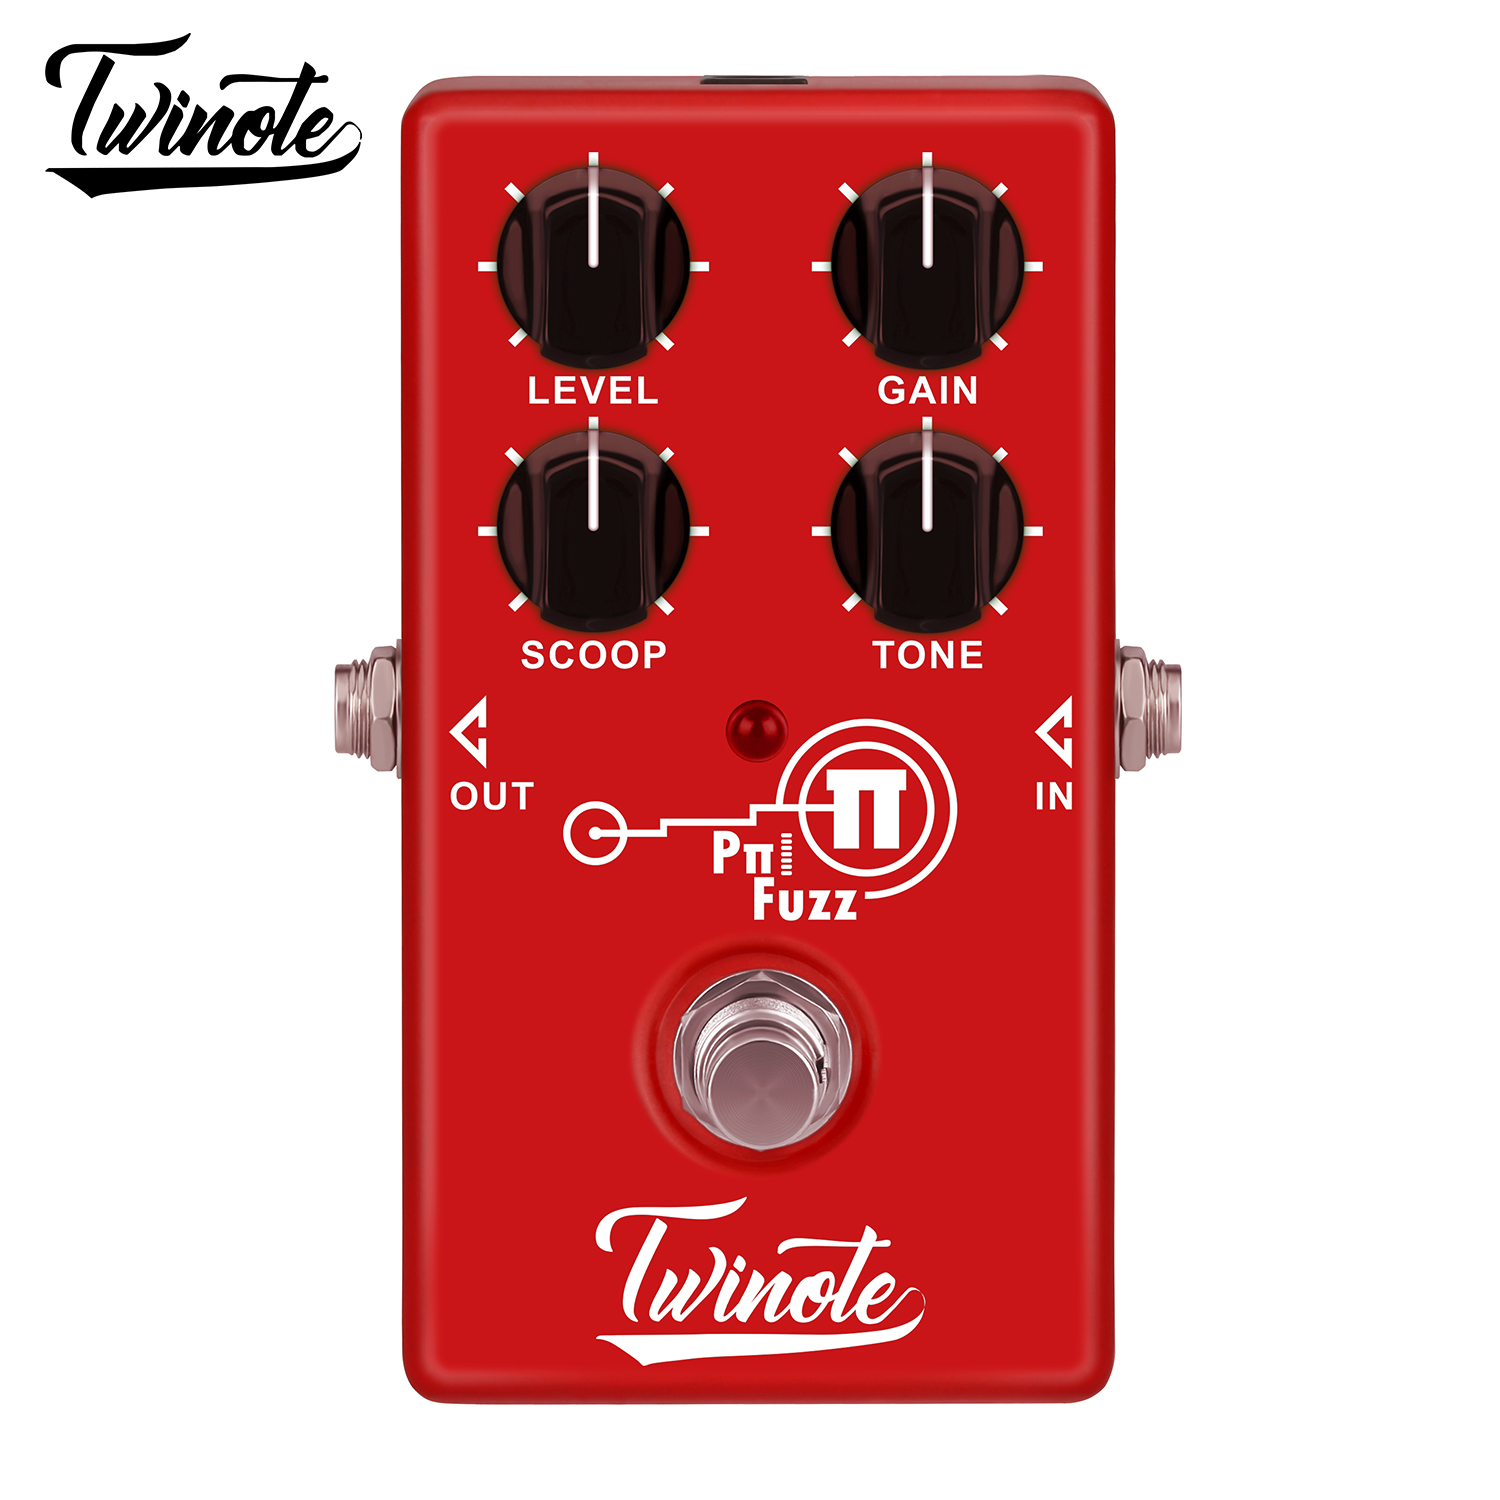 Twinote Ppi FUZZ Electric Guitar Effects Pedal Distortion to Fuzz Gain Circuit Tube Sound Stompbox image